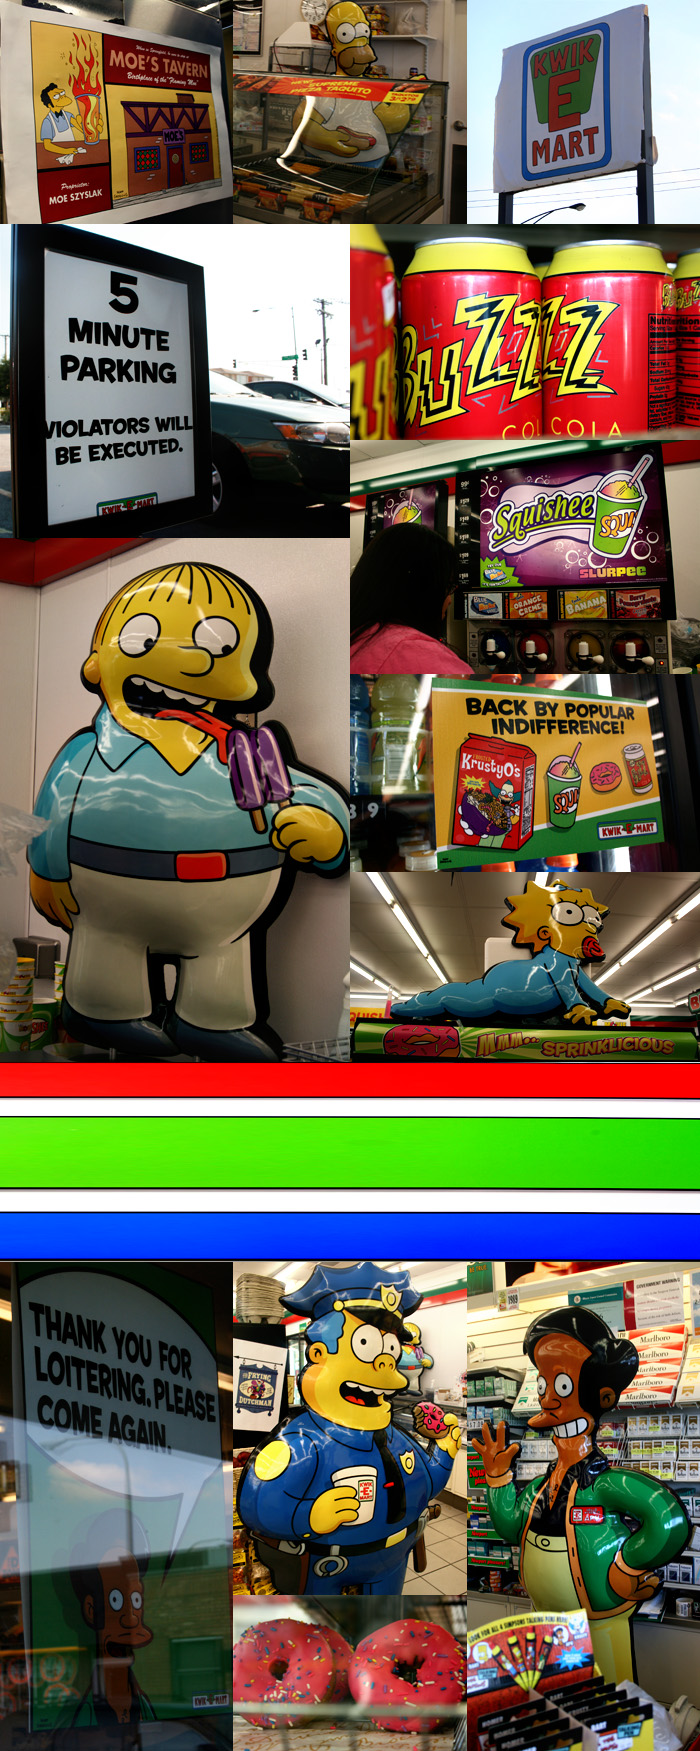 The Simpsons Kwik E Mart 7-11 in Chicago, Illinois in Chicago, Illinois